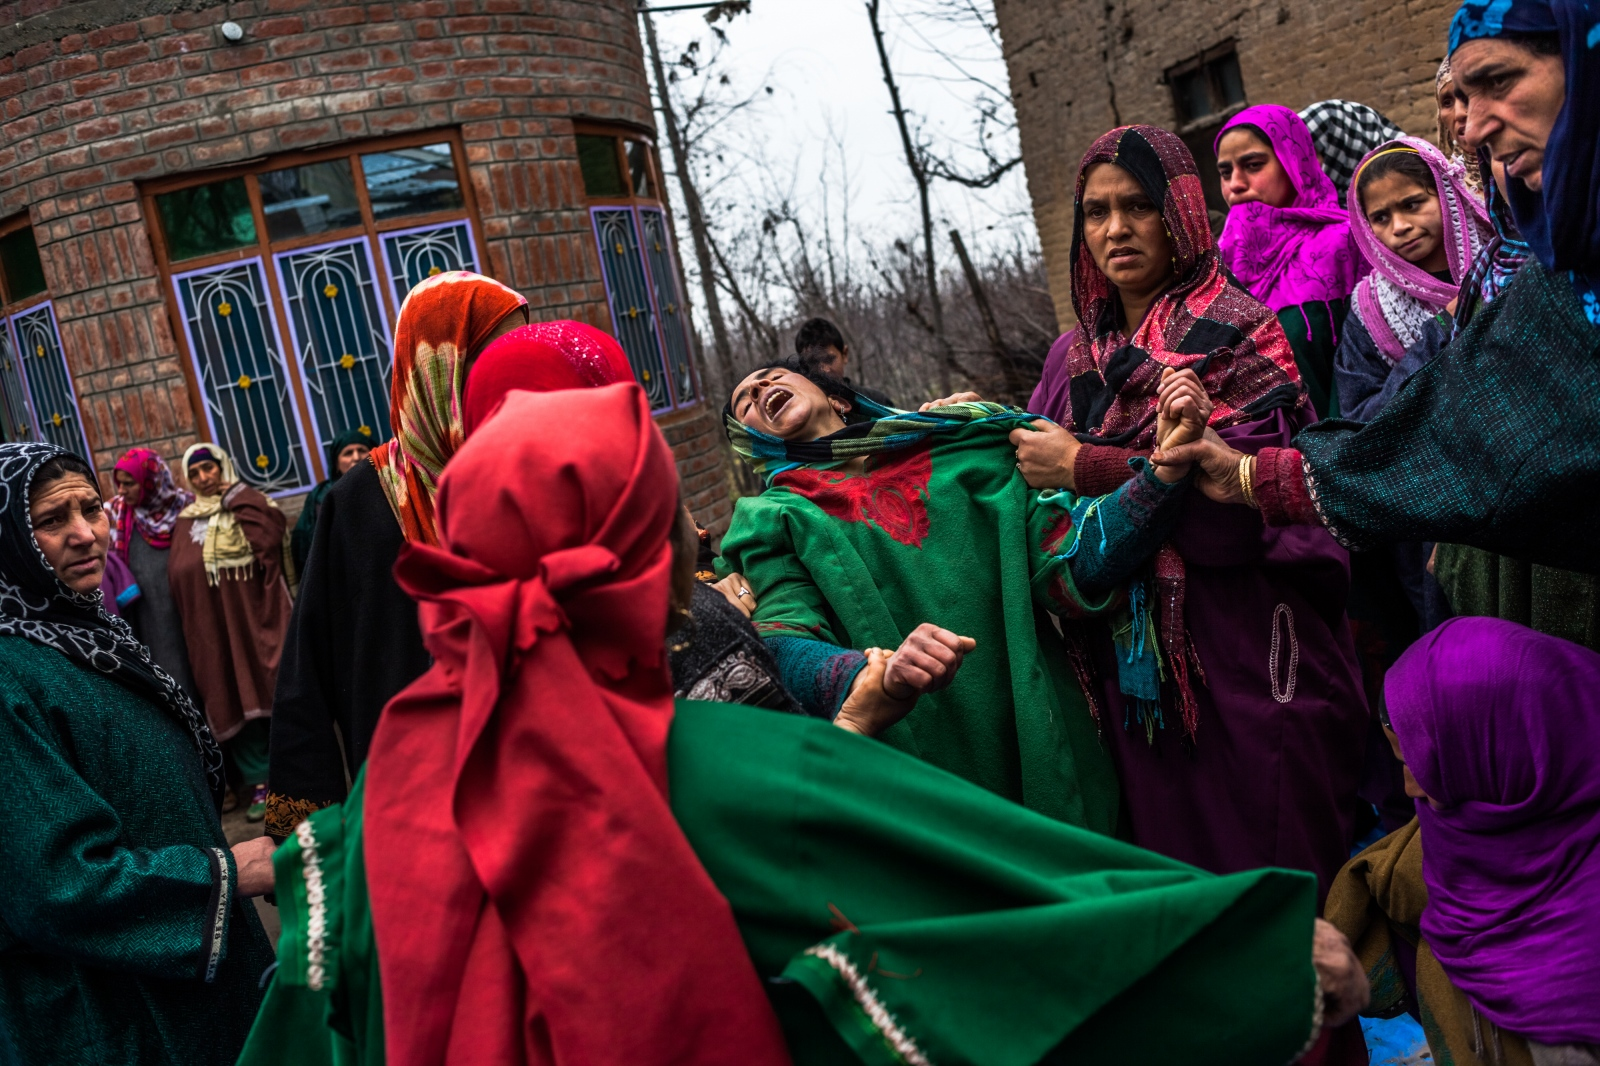 Kashmiri relative Hafeeza Khan (C), weeps during the funeral of nephew Rasiq Ahmed Khan, aged around 22, and who was found shot to death, at their home in Watchohallan village in south Kashmir's Shopian district some 80 kms from Srinagar on December 14, 2015. Raisq, who disappeared on December 13, was found shot to death by gunmen who local residents report were members of the Indian police Special Operations Group.